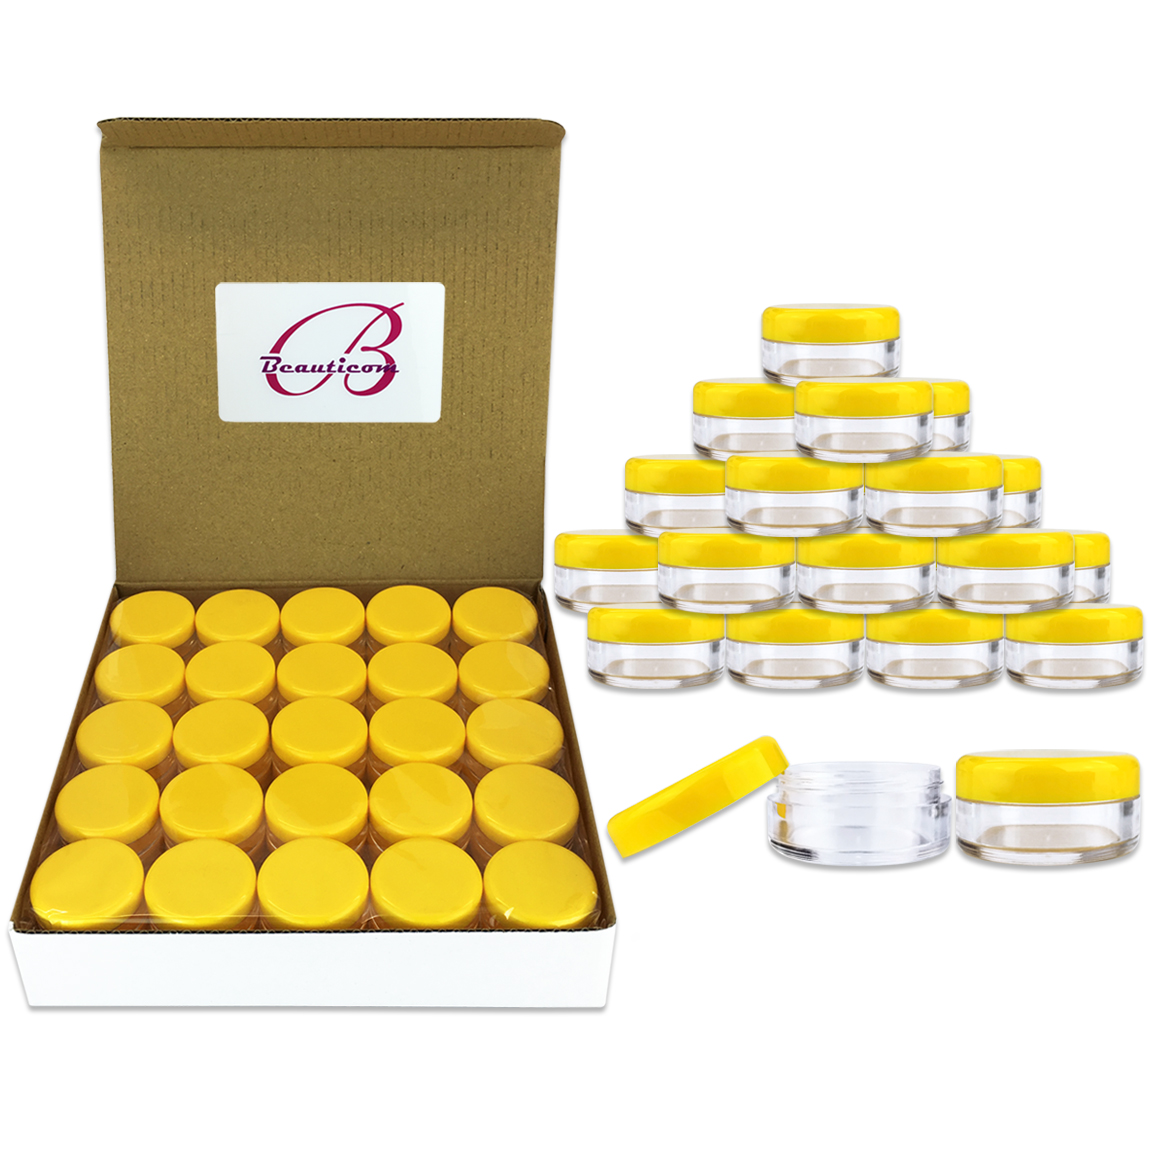 Beauticom 50 Pieces High Quality 5 Gram 5 ml (0.17 oz) Acrylic Round Cosmetic Beauty Makeup Sample Jars with Yellow Lids